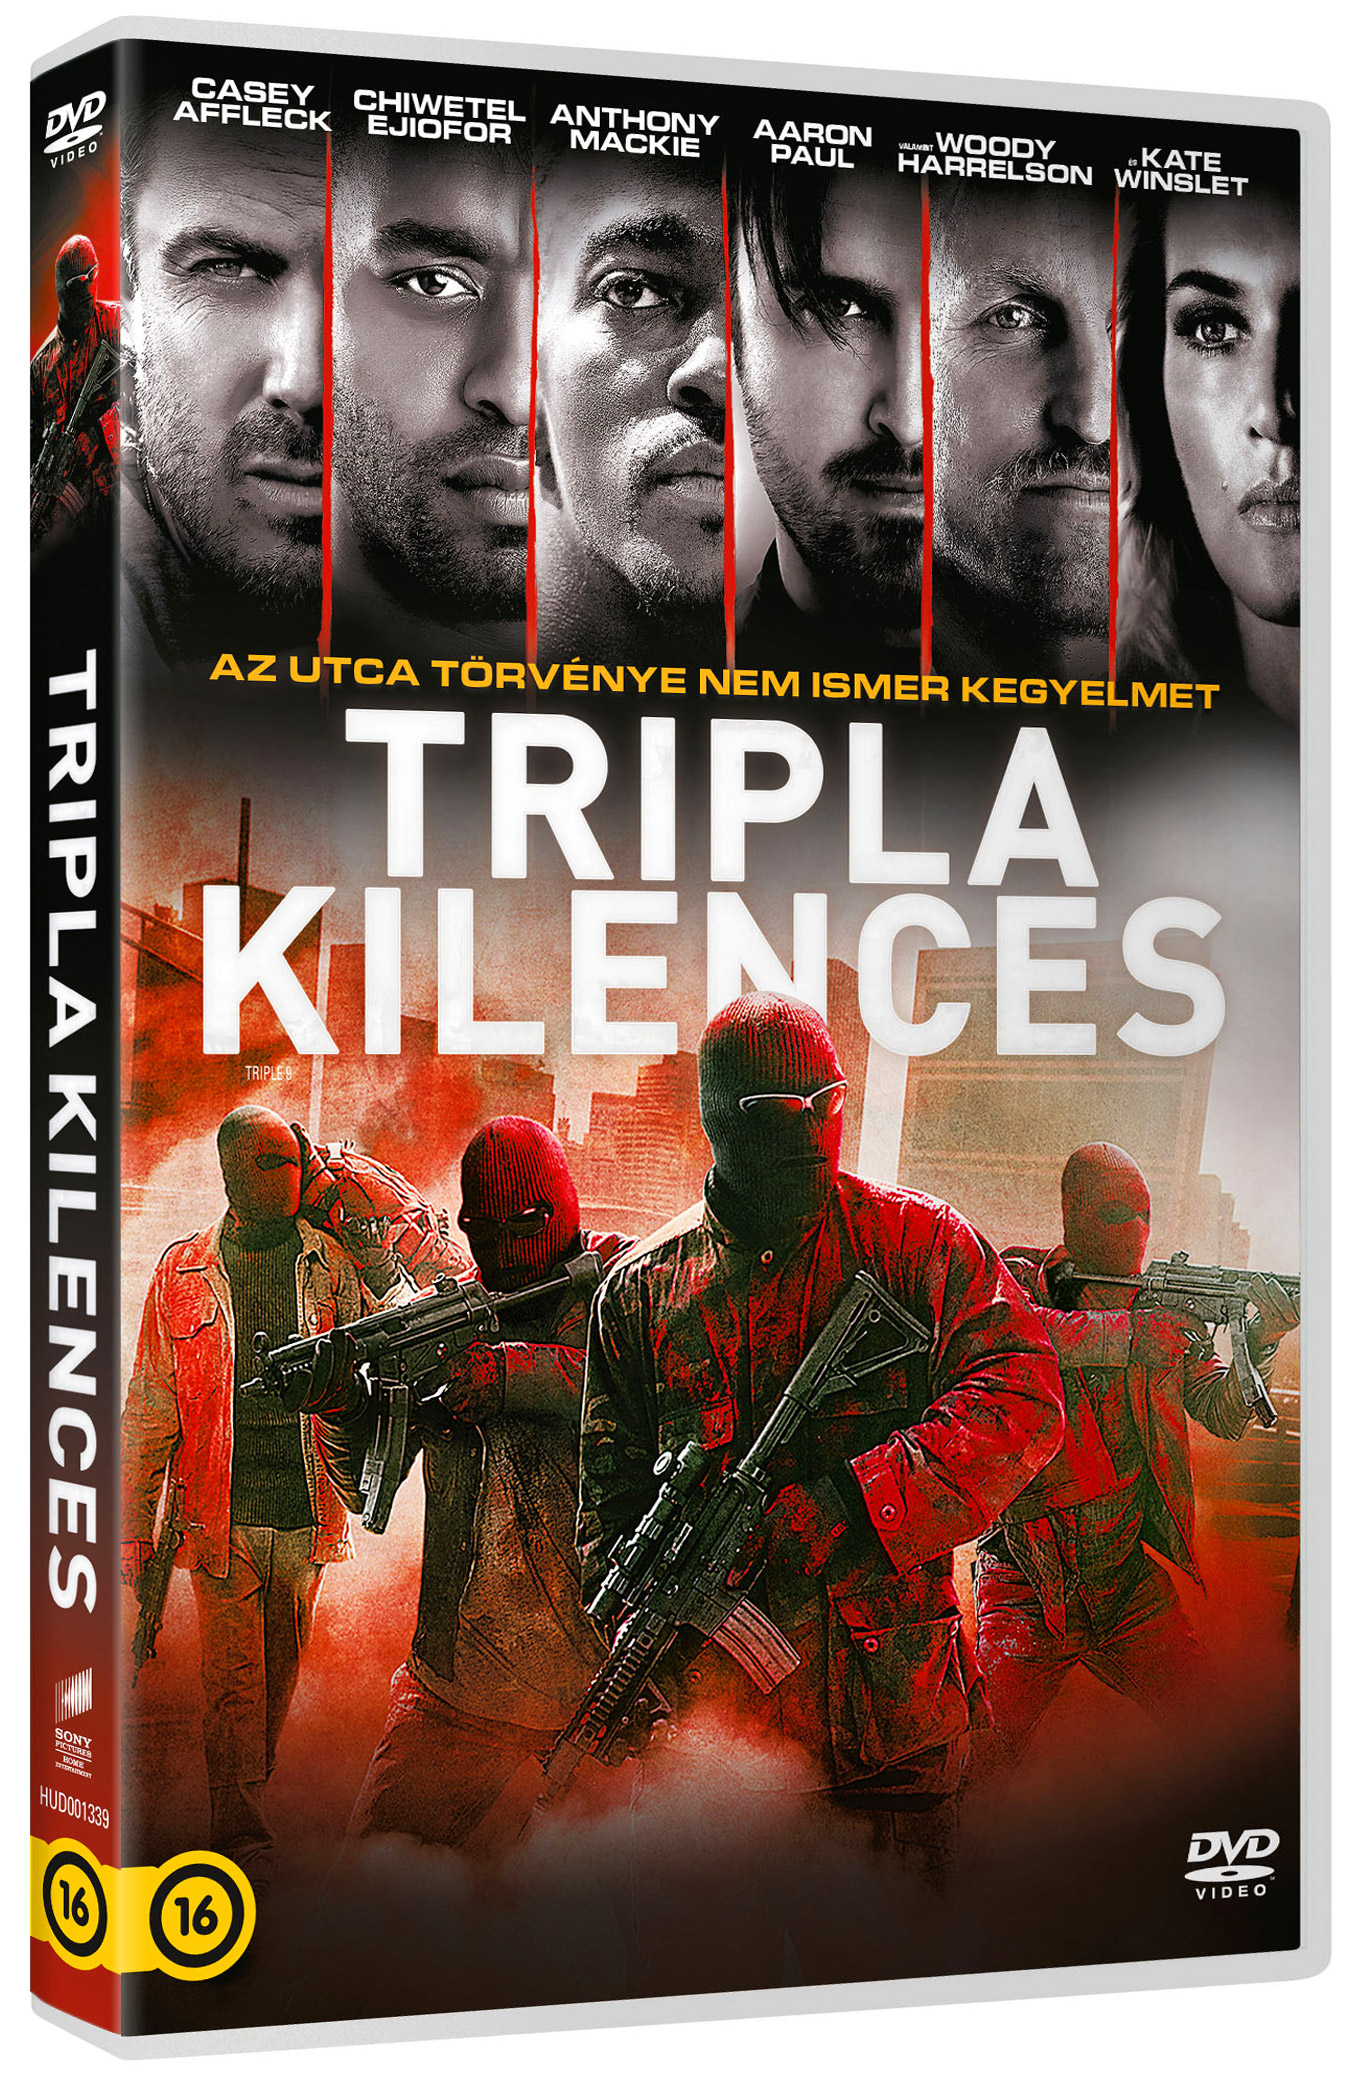 Tripla kilences DVD